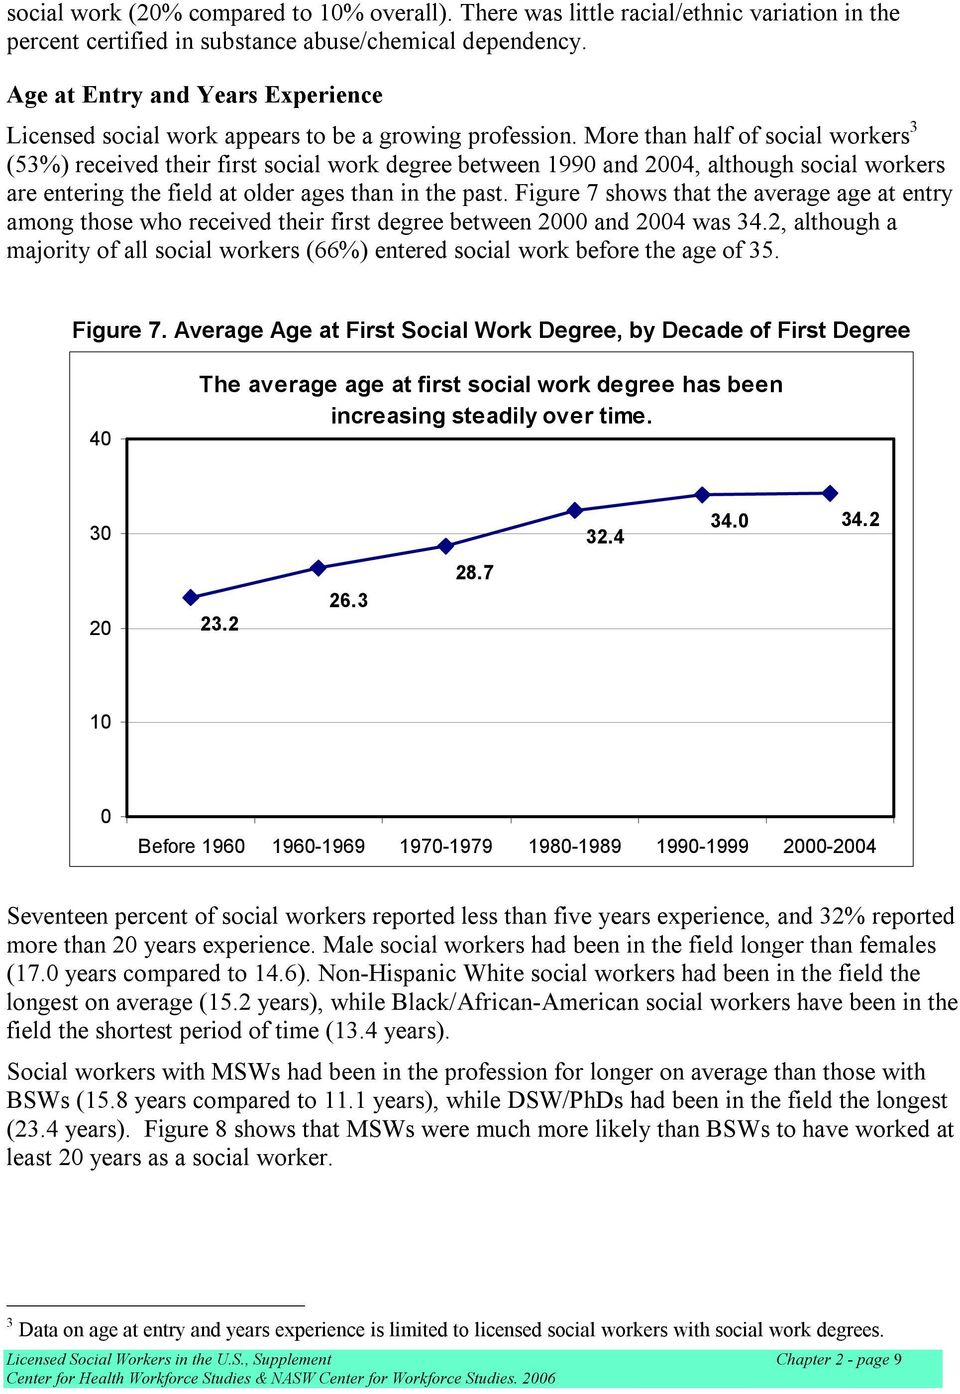 More than half of social workers 3 (53%) received their first social work degree between 1990 and 2004, although social workers are entering the field at older ages than in the past.